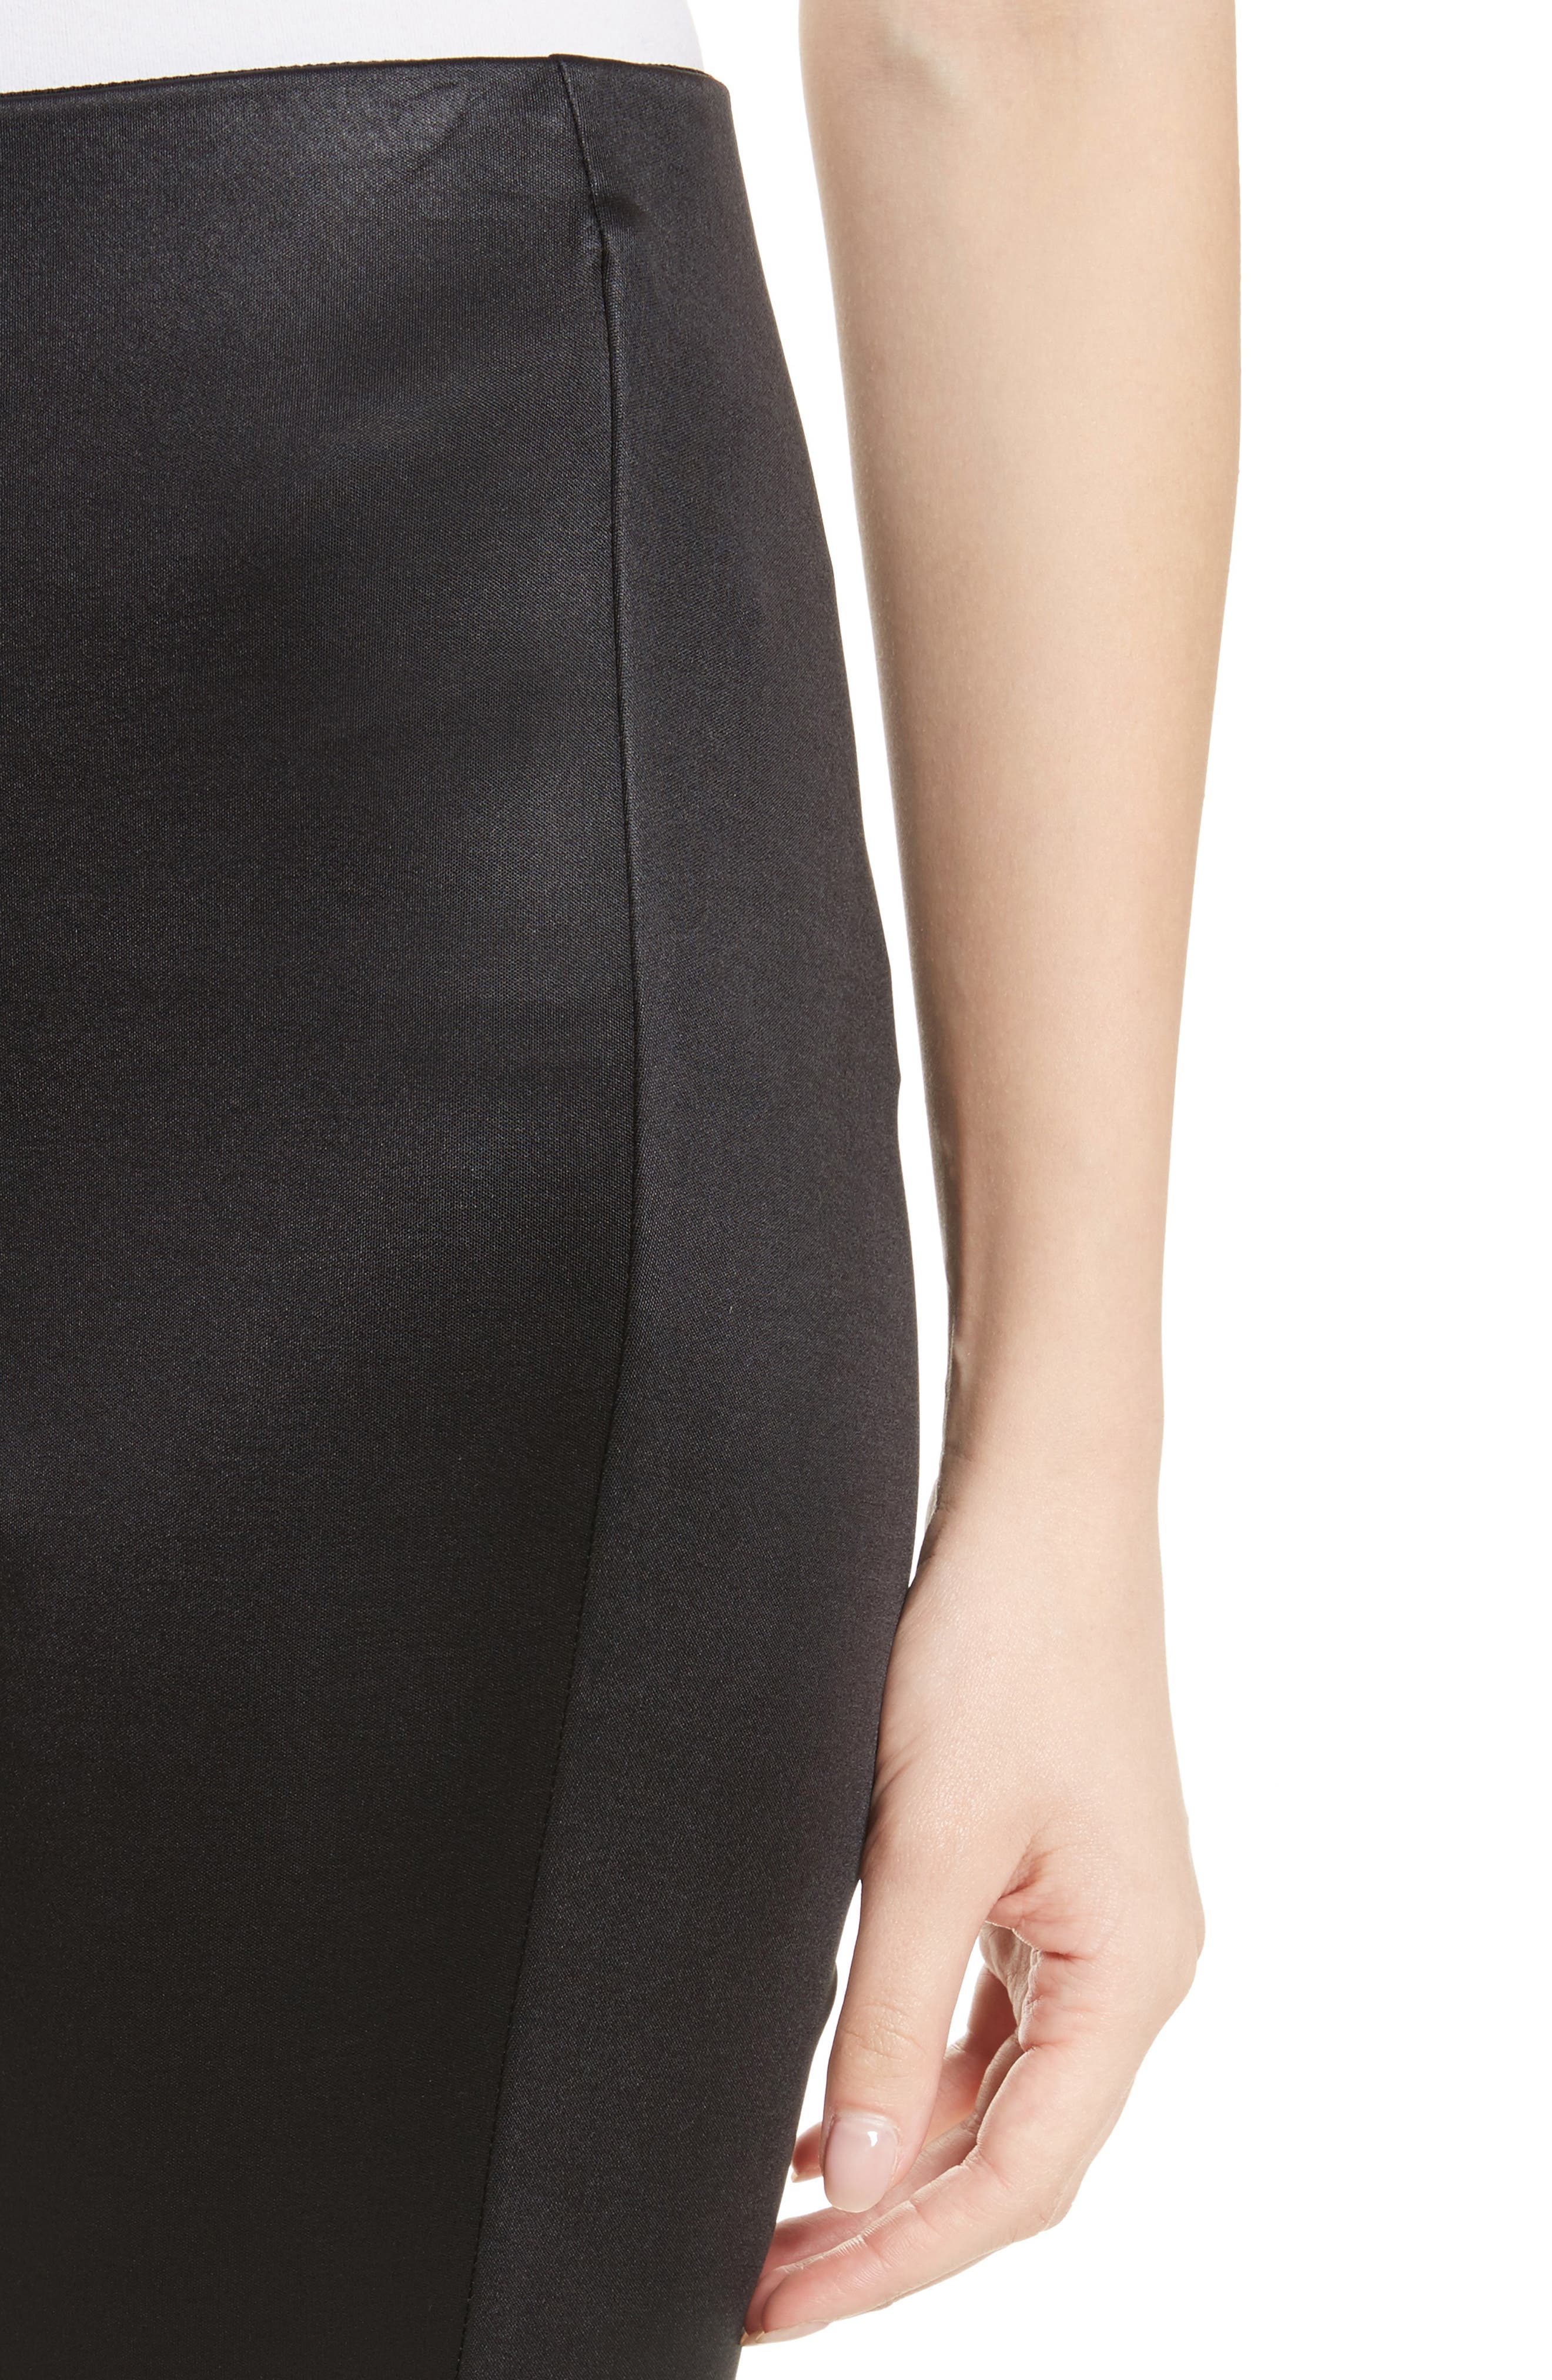 Simone Sateen Pants,                             Alternate thumbnail 4, color,                             Black